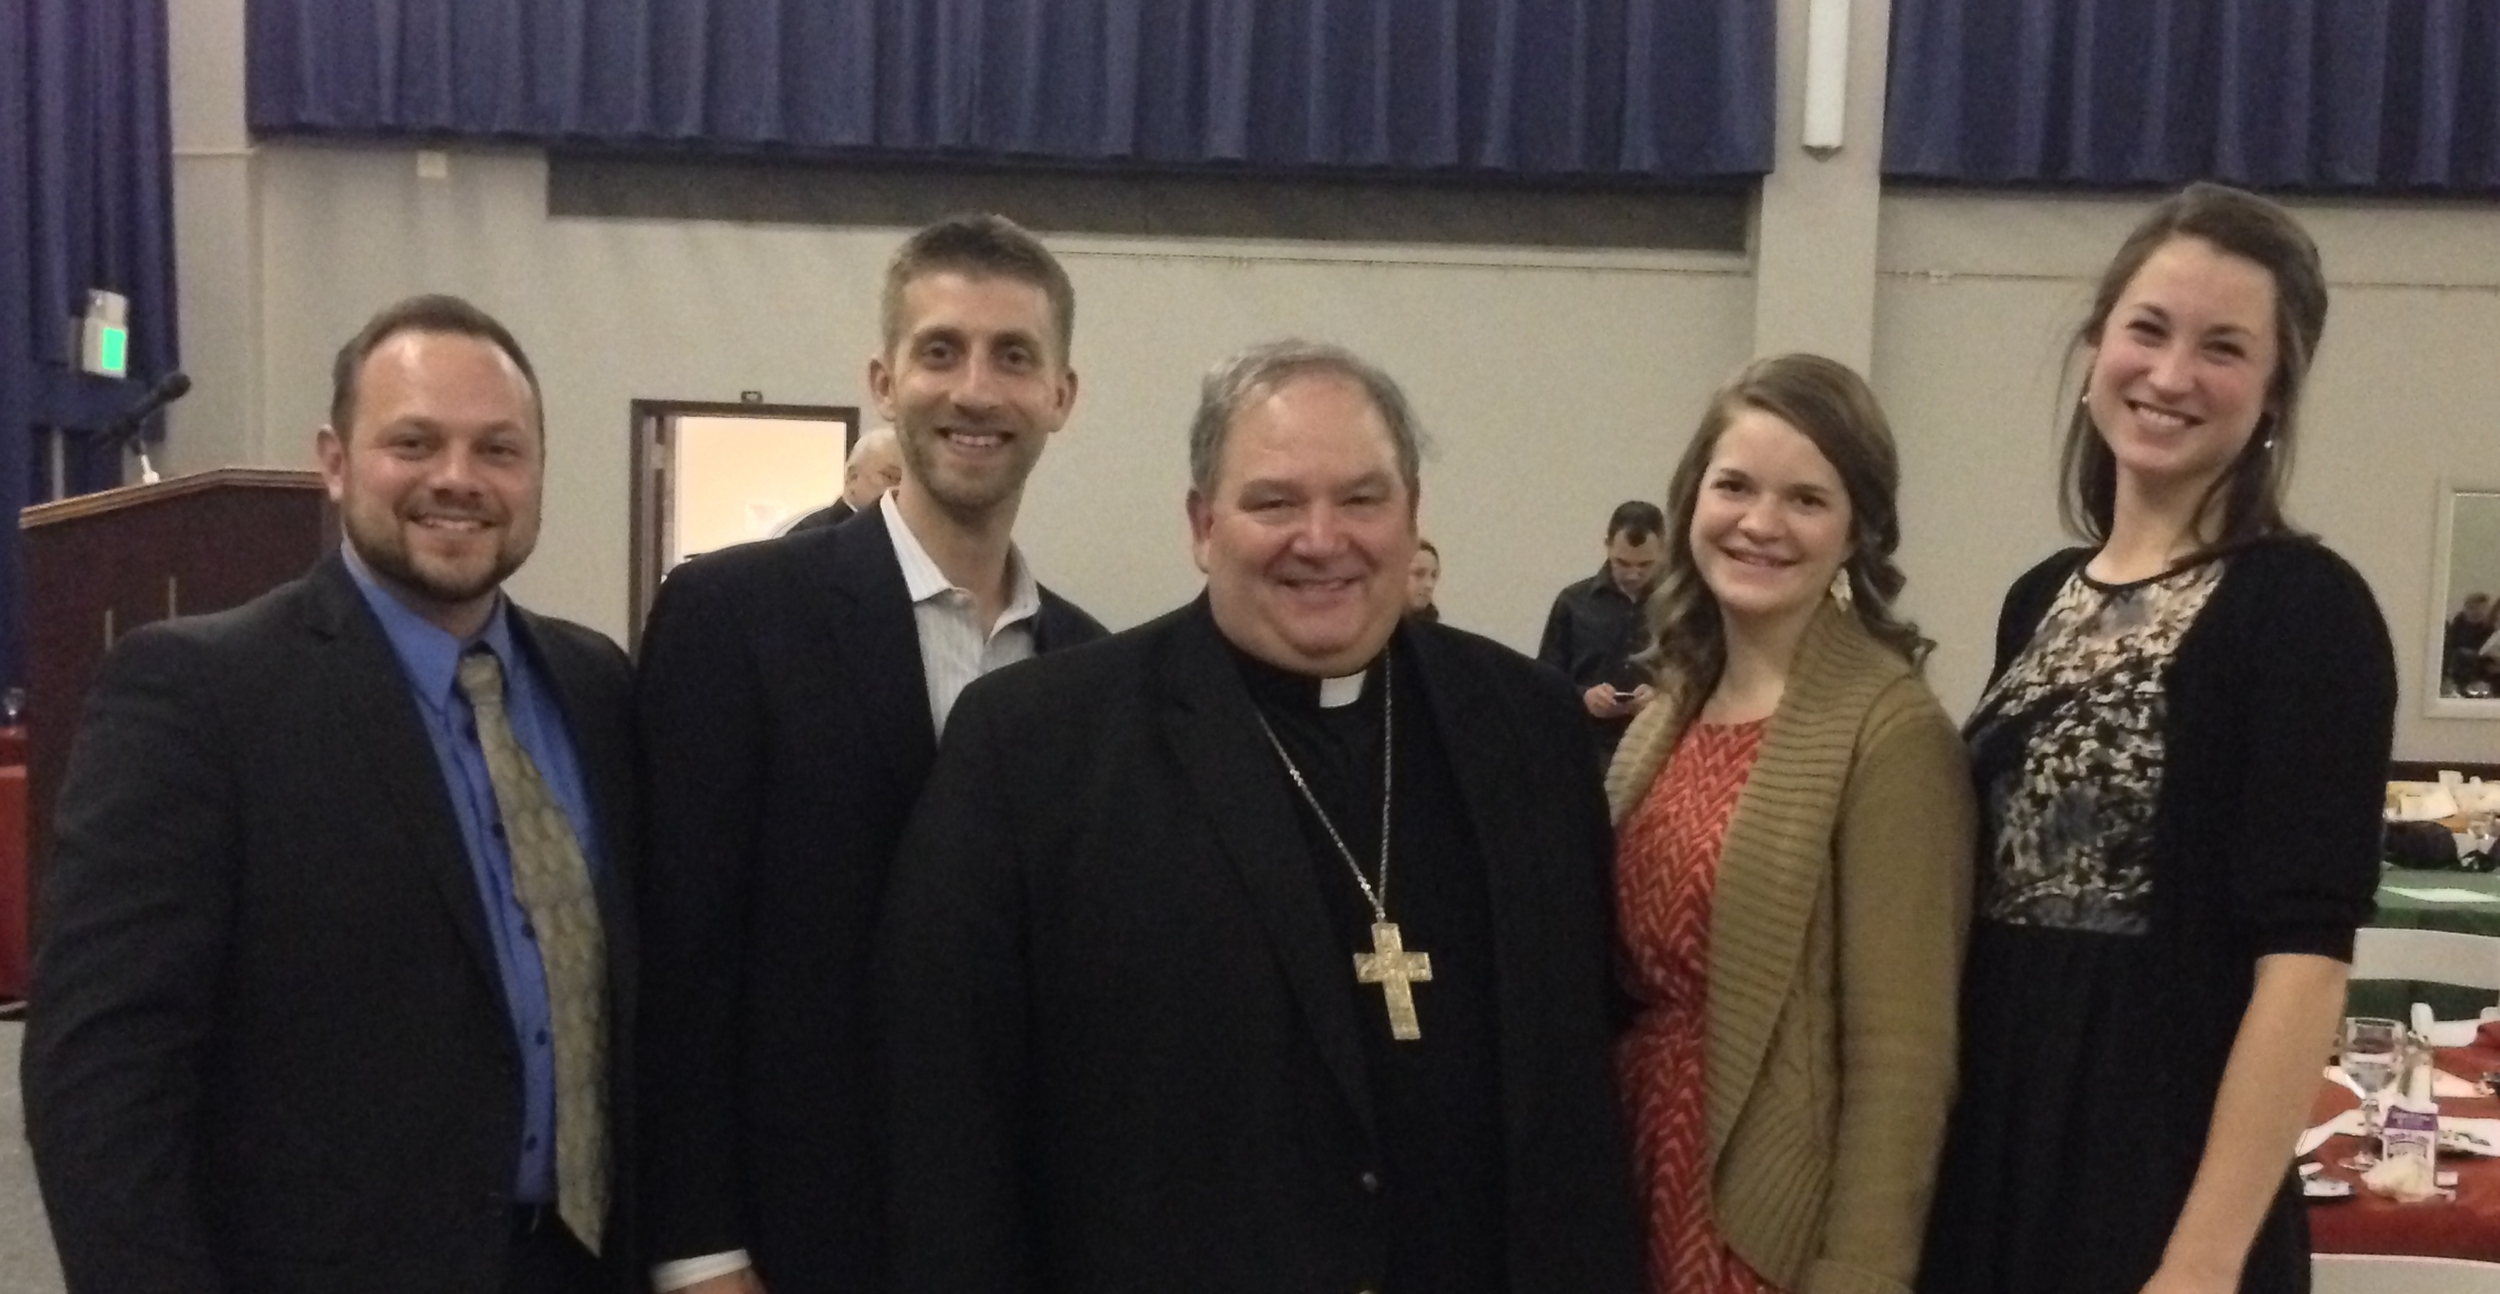 Archbishop Hebda with SPO Household member Craig Johnson and SPO staff members Ed Moccia, Kimi Butler, and Becca Shrake